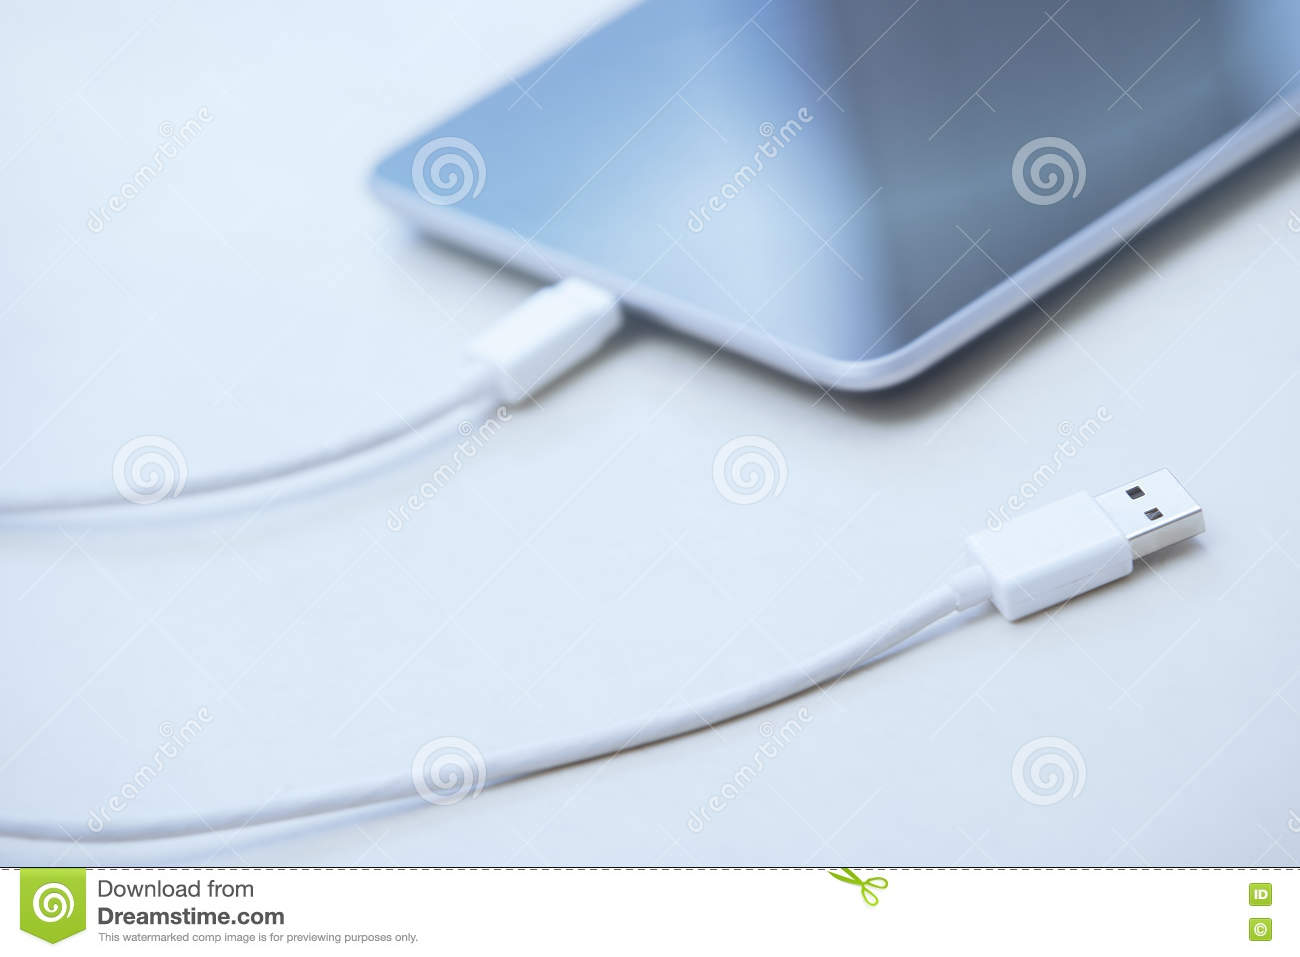 Tablet computer with USB cable